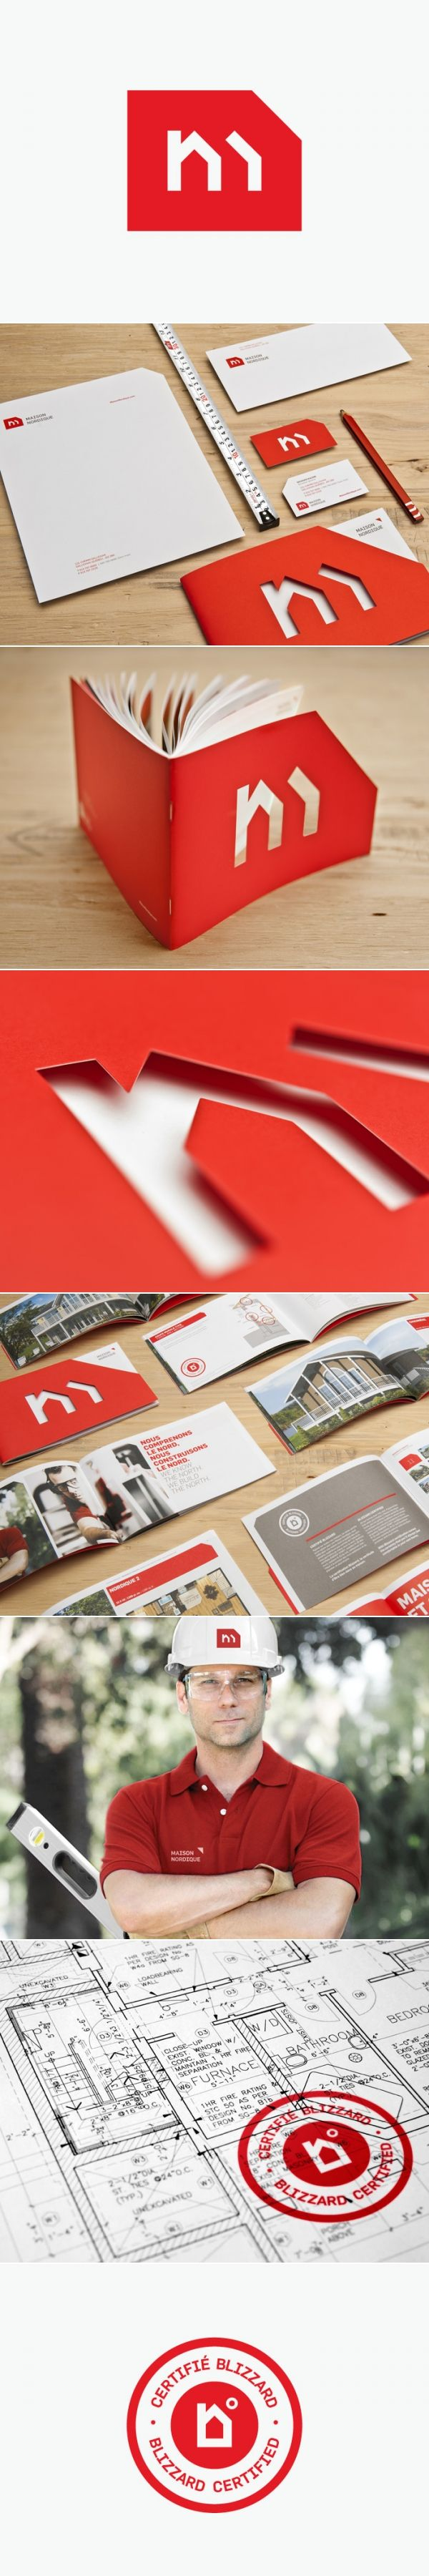 Maison Nordique - Corporate Branding identity | #stationary #corporate #design #corporatedesign #identity #branding #marketing repinned by www.BlickeDeeler.de | Visit our website: www.blickedeeler.de/leistungen/corporate-design